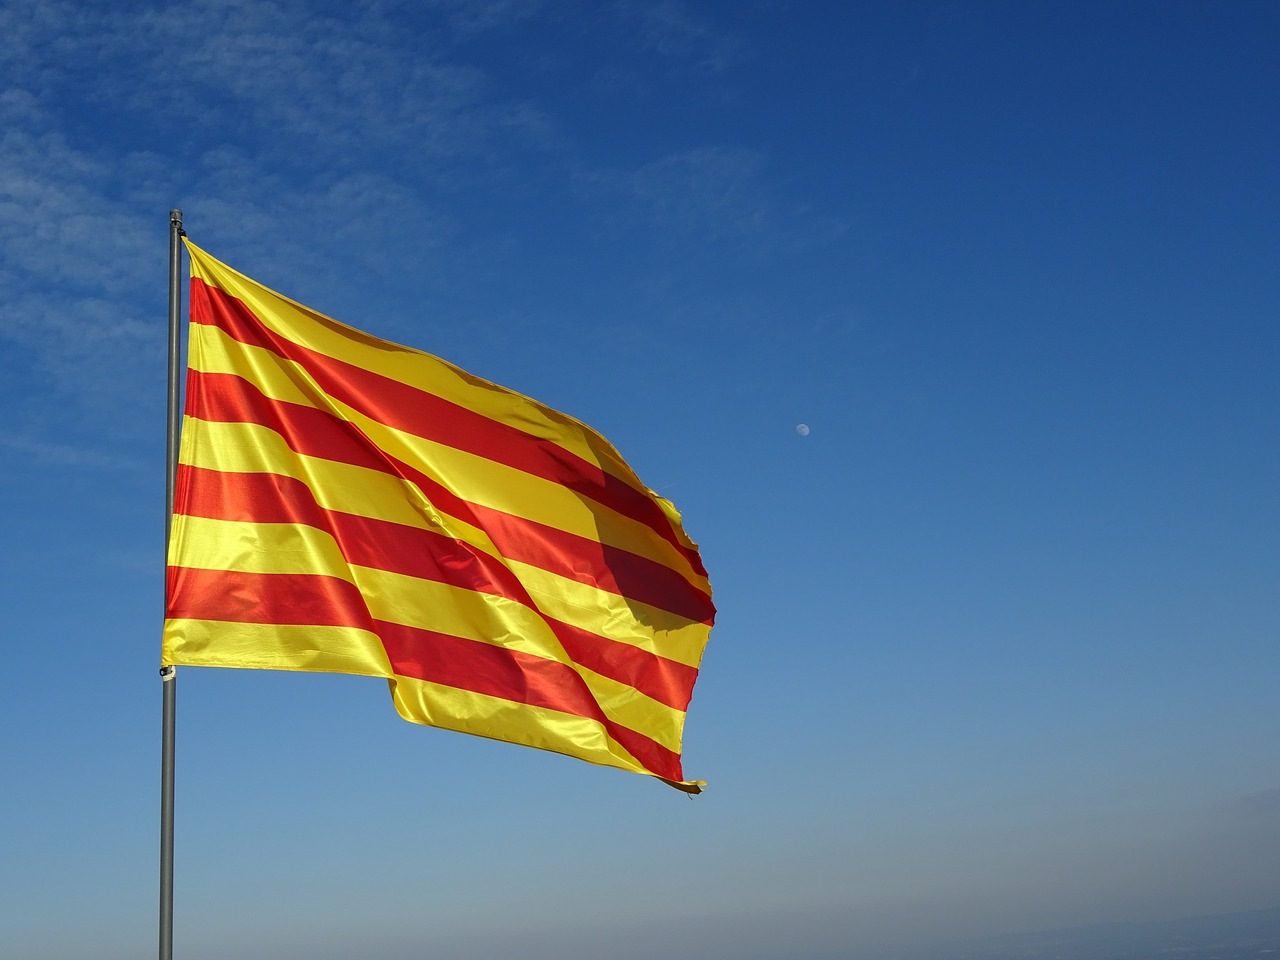 "<a href=""https://pixabay.com/en/flag-catalan-senyera-waving-2123796/"">The Catalan flag 